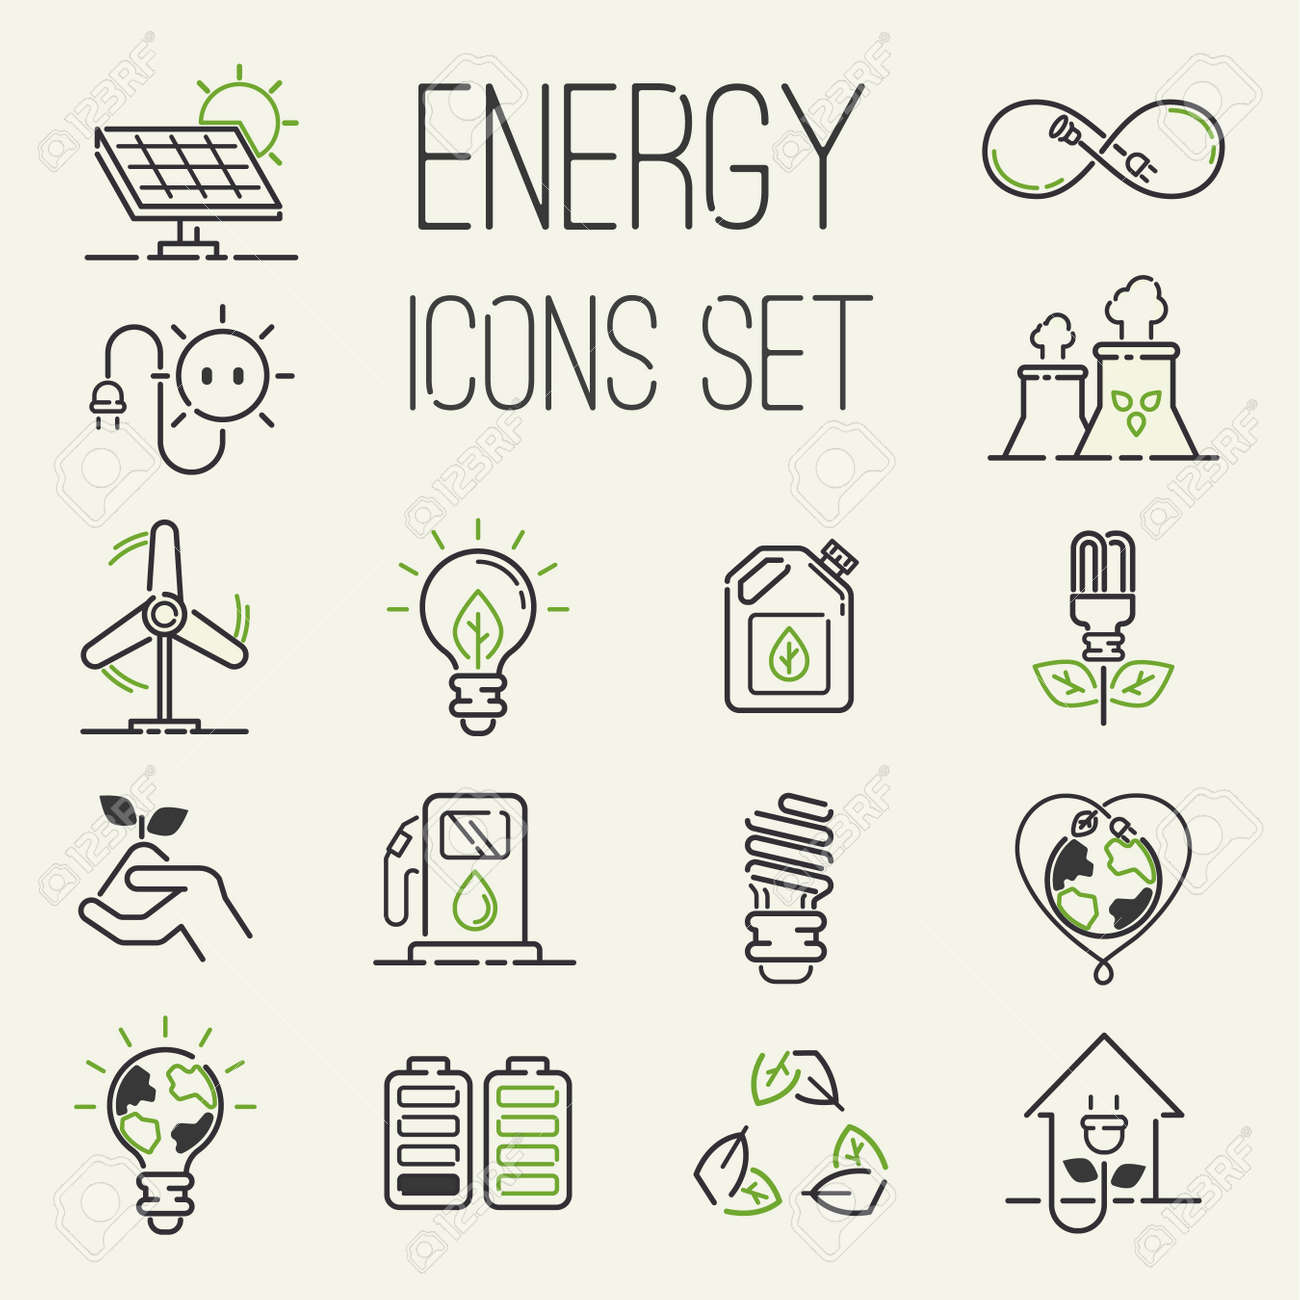 Vector green eco energy icons set energy icons power set battery oil environment nature. Nuclear house atom renewable energy icons. Light bulb electricity water nature eco renewable industry - 98177231